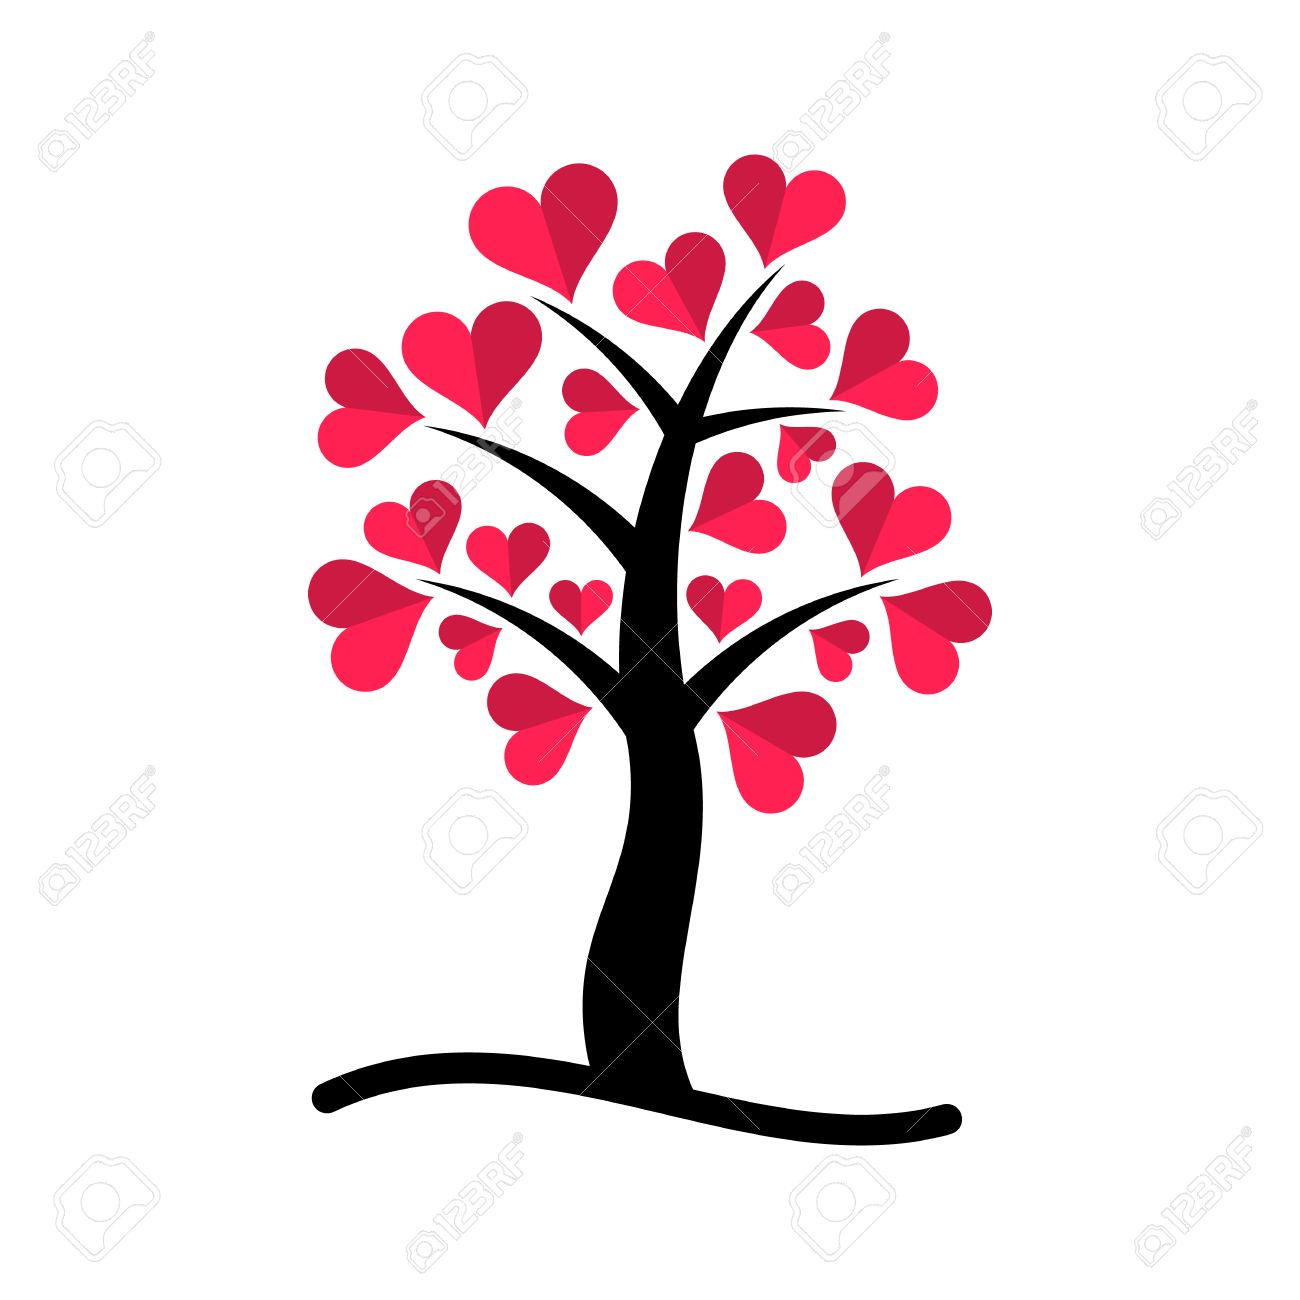 Dainty Abstract Vector Tree Red Heart Shaped Leaves Stock Vector Abstract Vector Tree Pea Pods Heart Shaped Leaves Red Heart Shaped Leaves Royalty Free Tree Heart Shaped Leaves Tennessee Tree houzz-02 Tree With Heart Shaped Leaves